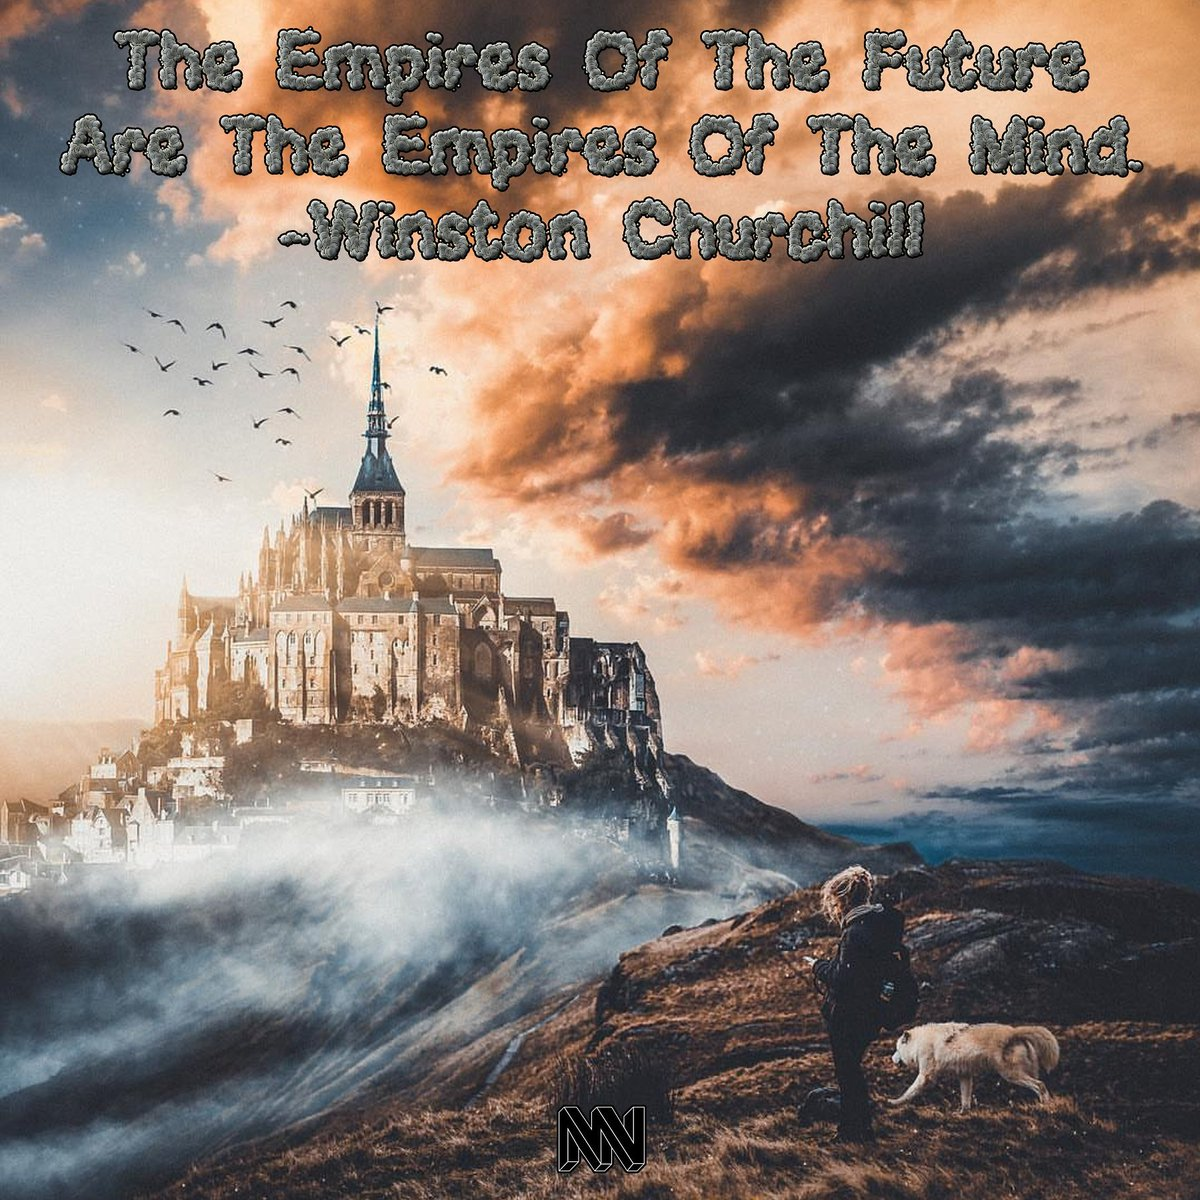 #like if you agree #follow for more  #NeoNation #quotes #motivationalquotes #inspirationalquotes #art #castle #empire <br>http://pic.twitter.com/lCQcnZzR0z